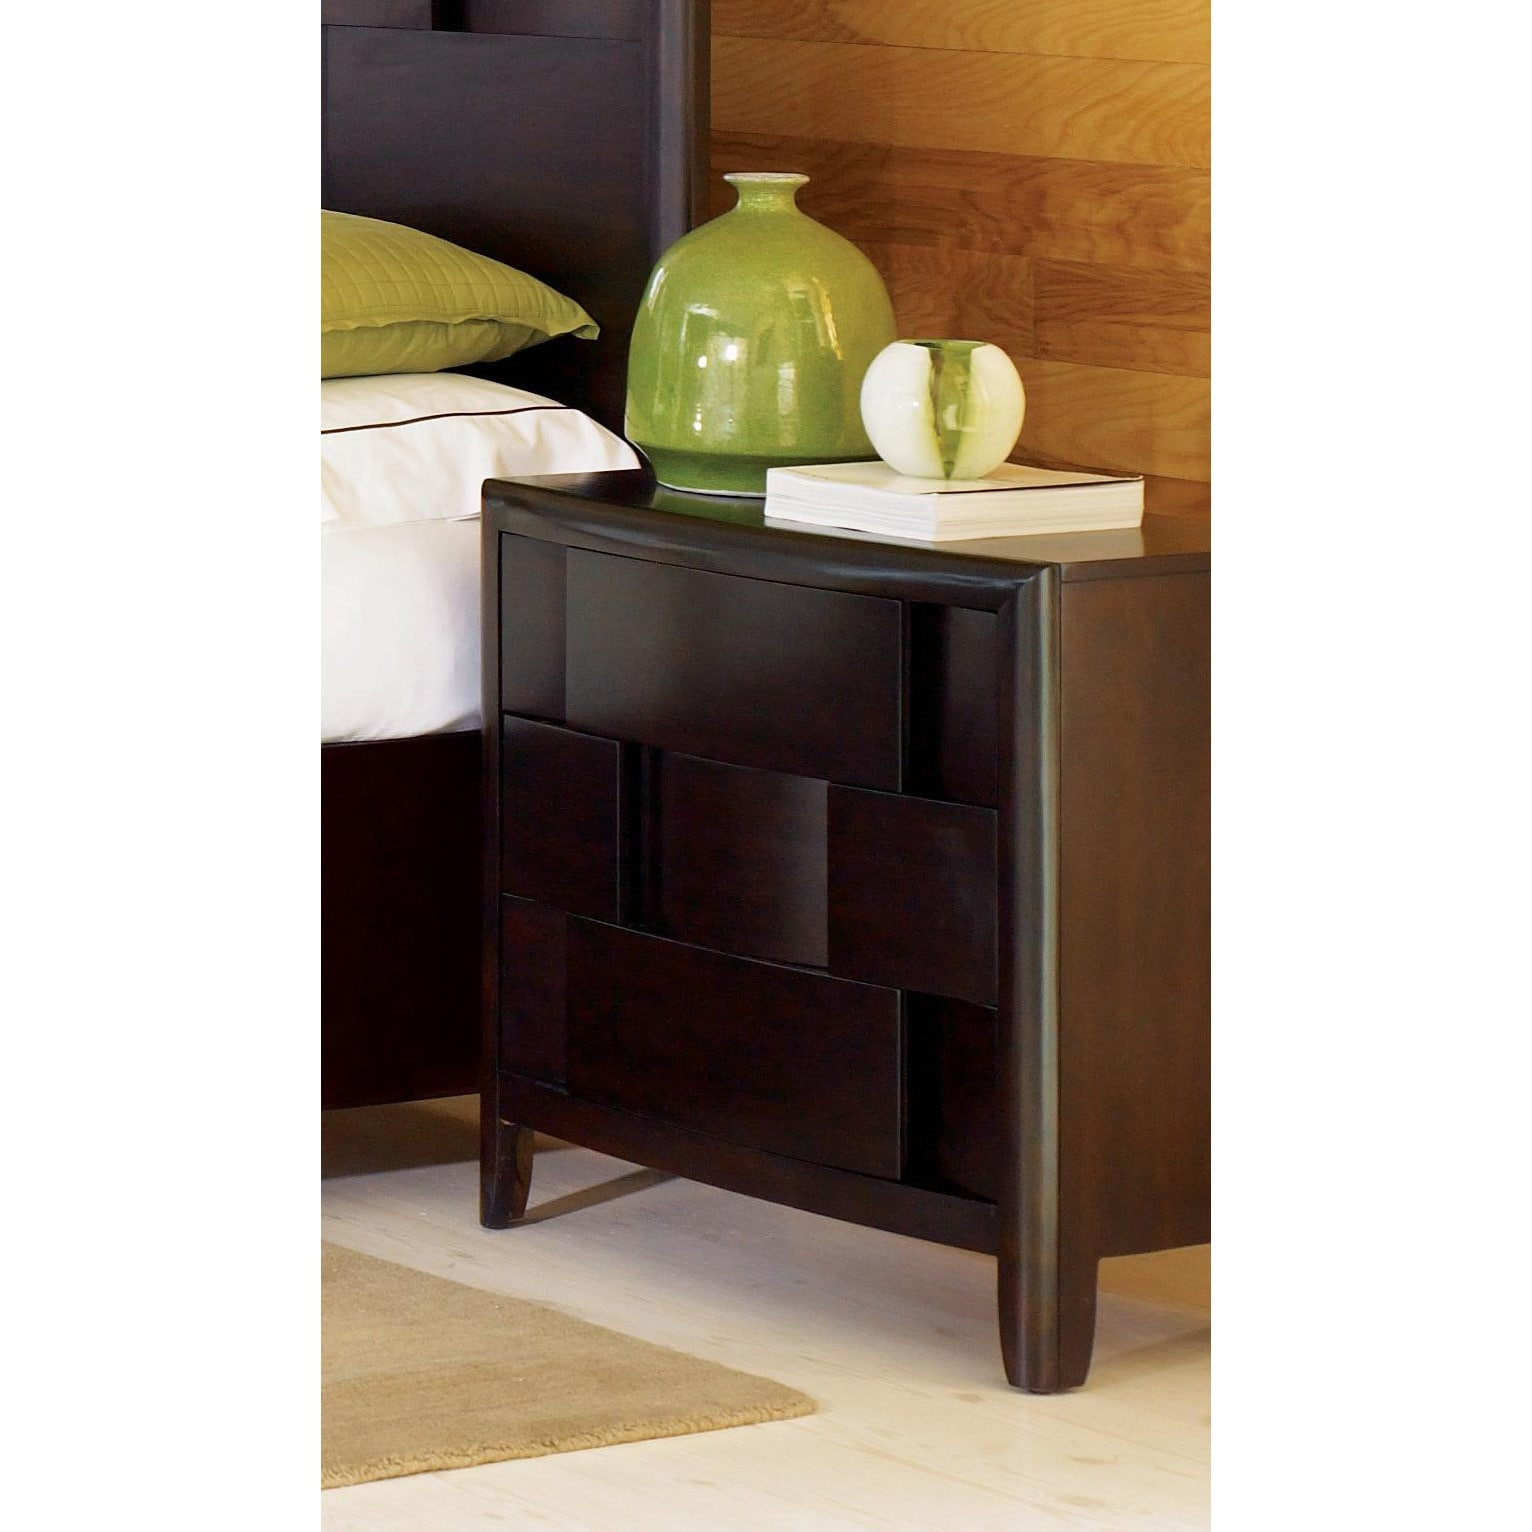 Magnussen Home Magnussen B1428 Nova Wood 3-drawer Nightst...